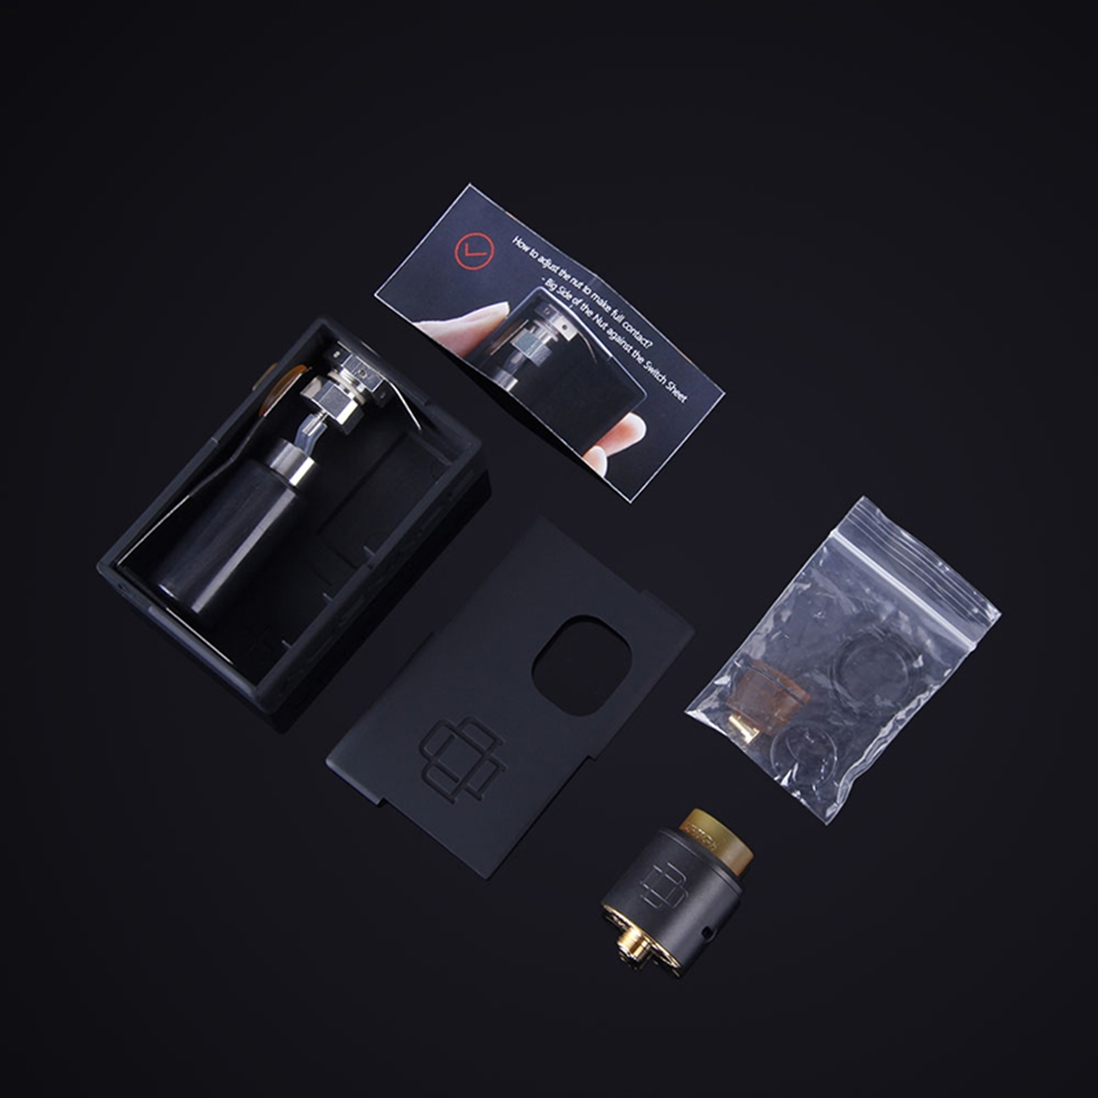 AUGVAPE Druga 22 Squonk Kit Packing List